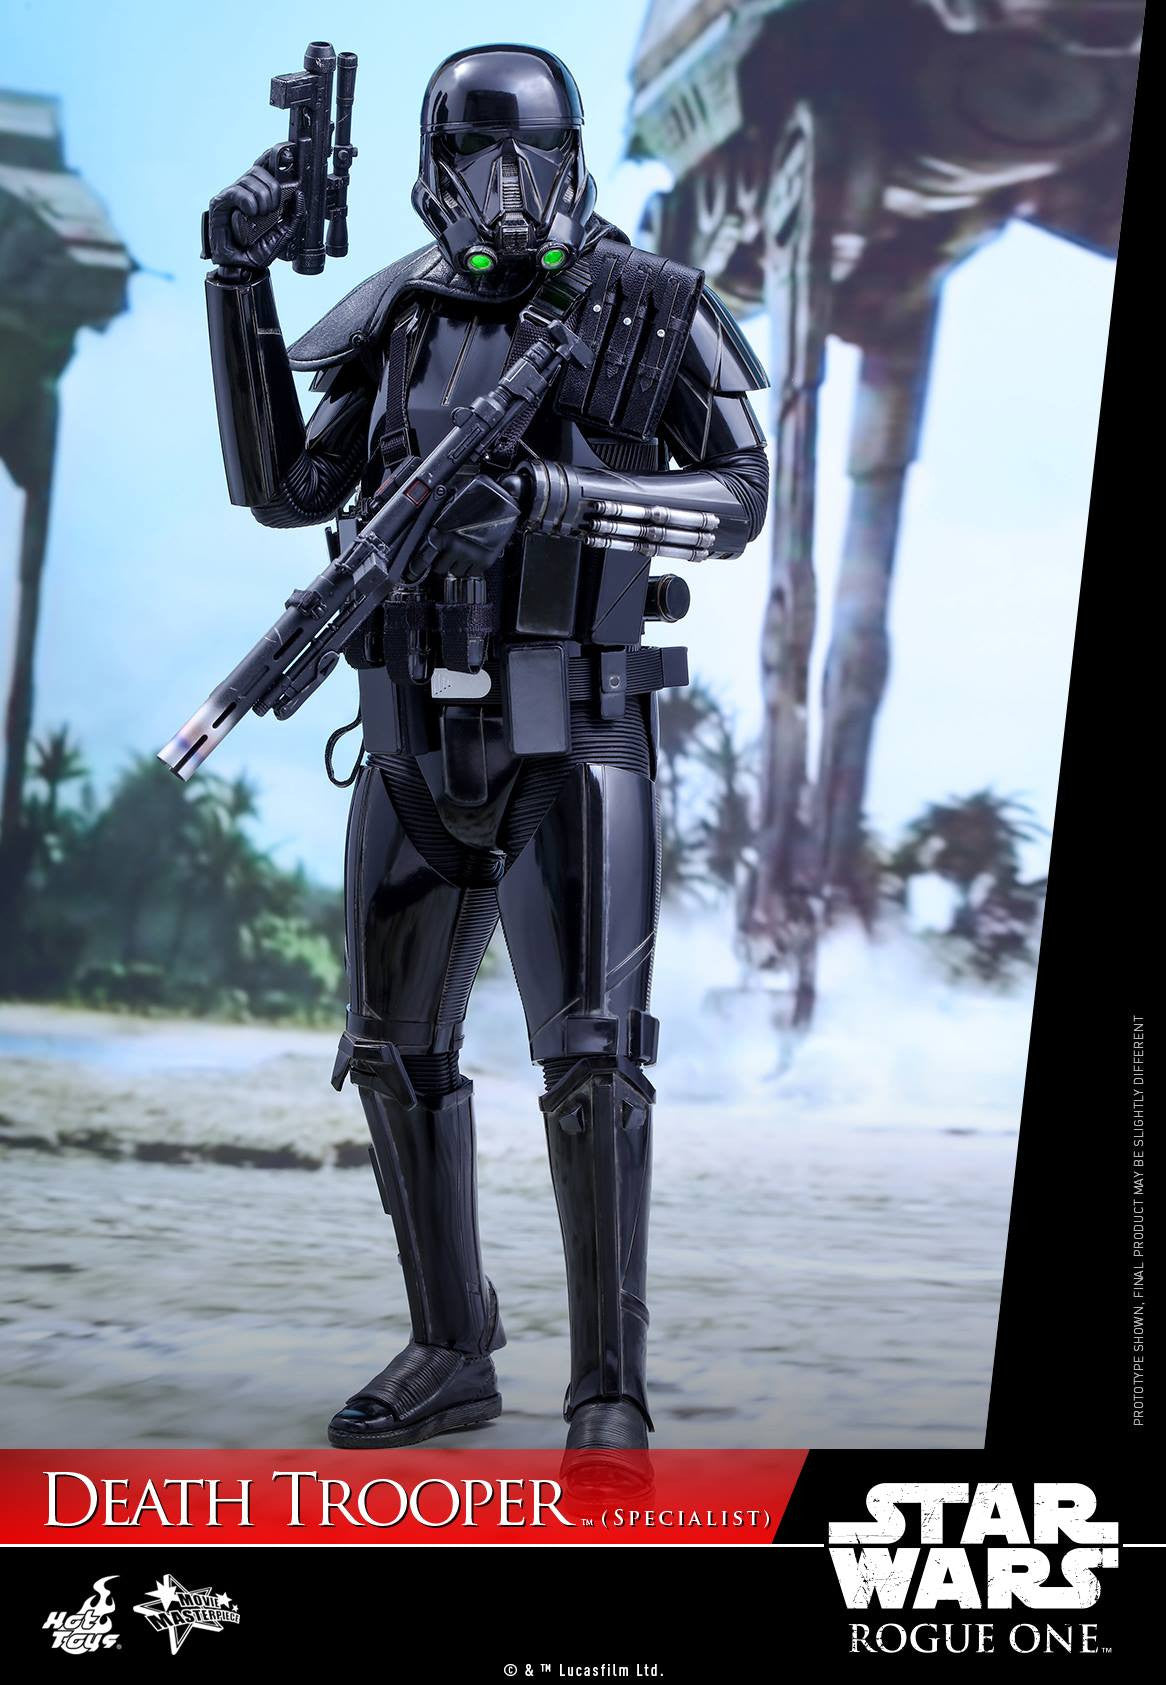 Hot Toys - MMS385 - Rogue One: A Star Wars Story - Death Trooper (Specialist) - Marvelous Toys - 8